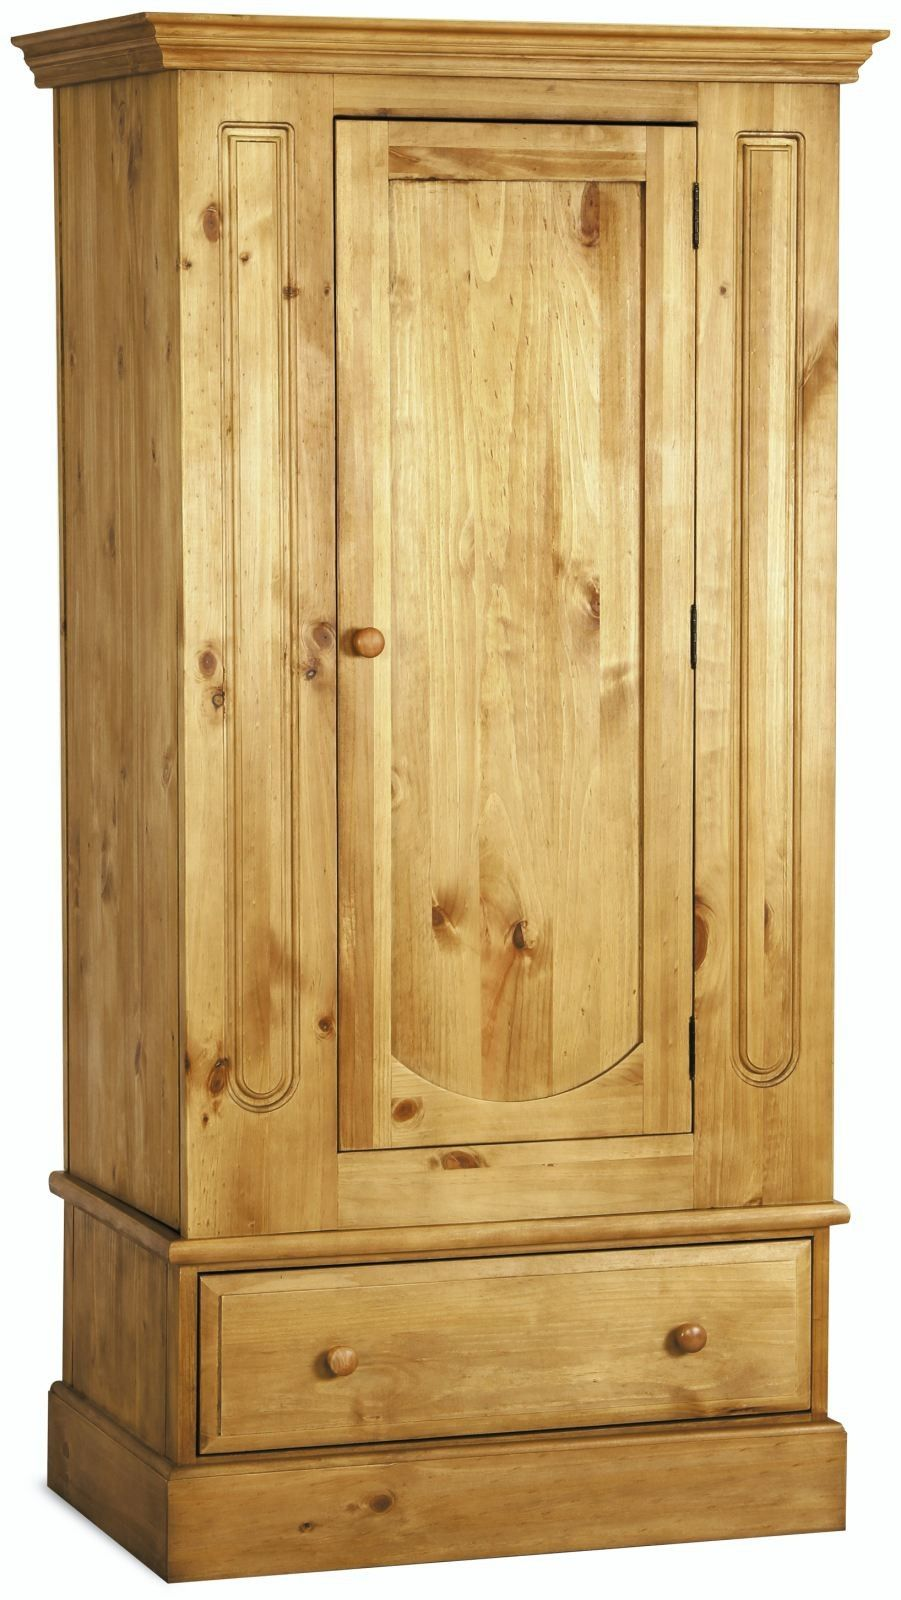 Country Pine 1 Door Wardrobe Traditional Furniture Hills Furniture Store